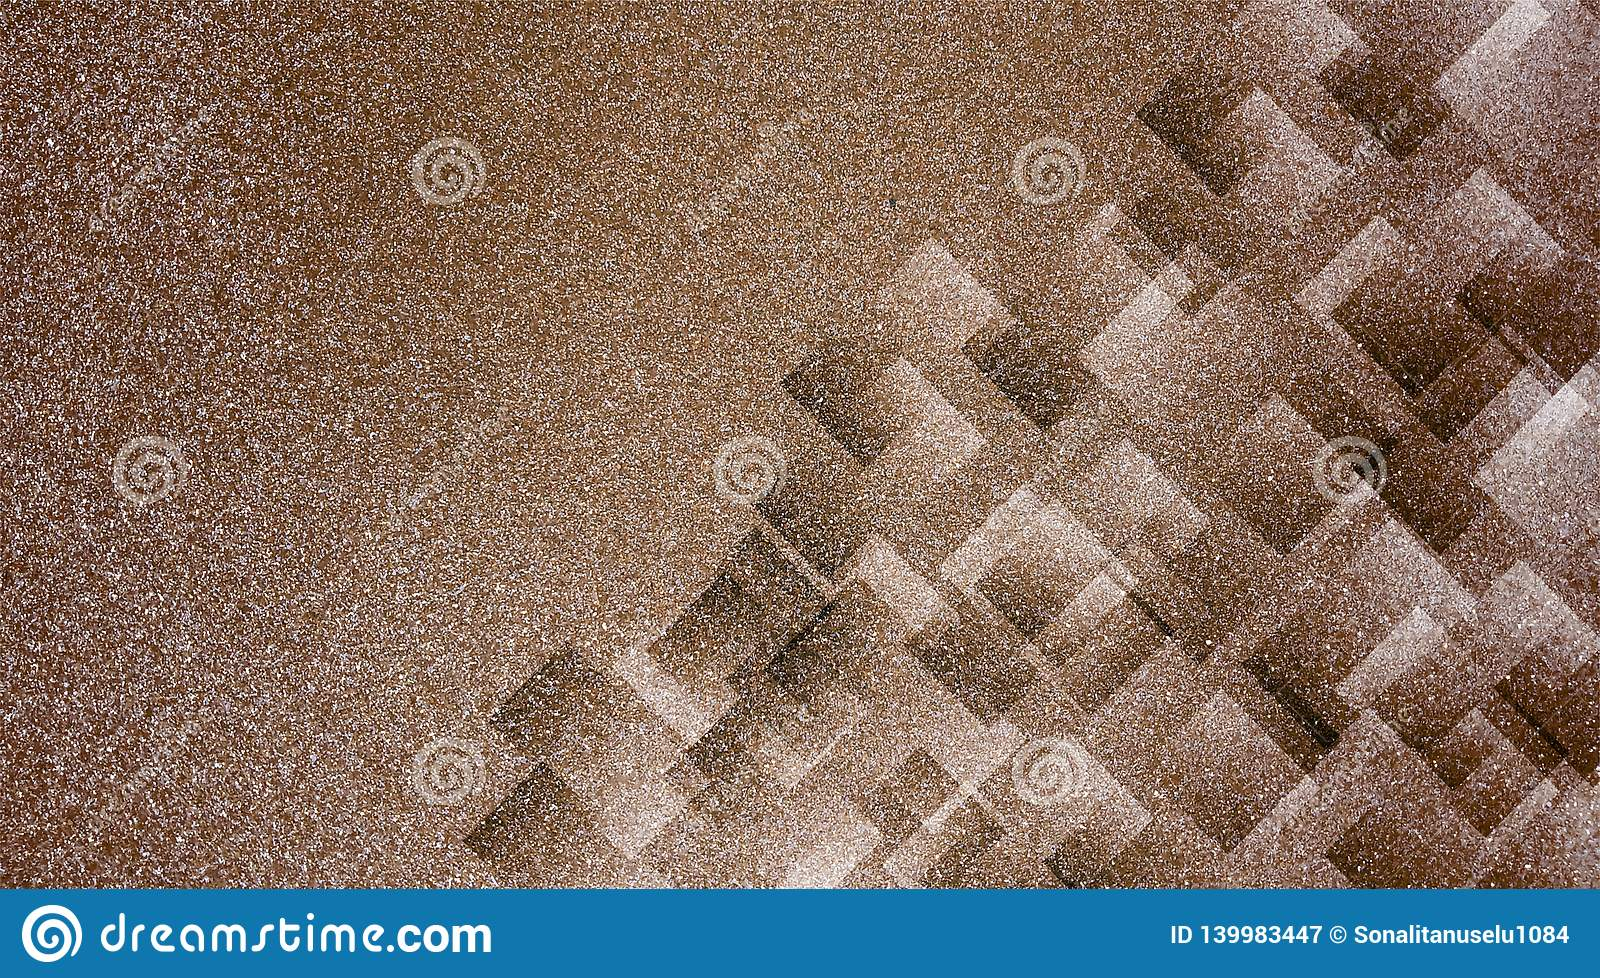 Abstract brown background shaded striped pattern and blocks in diagonal lines with vintage brown texture.